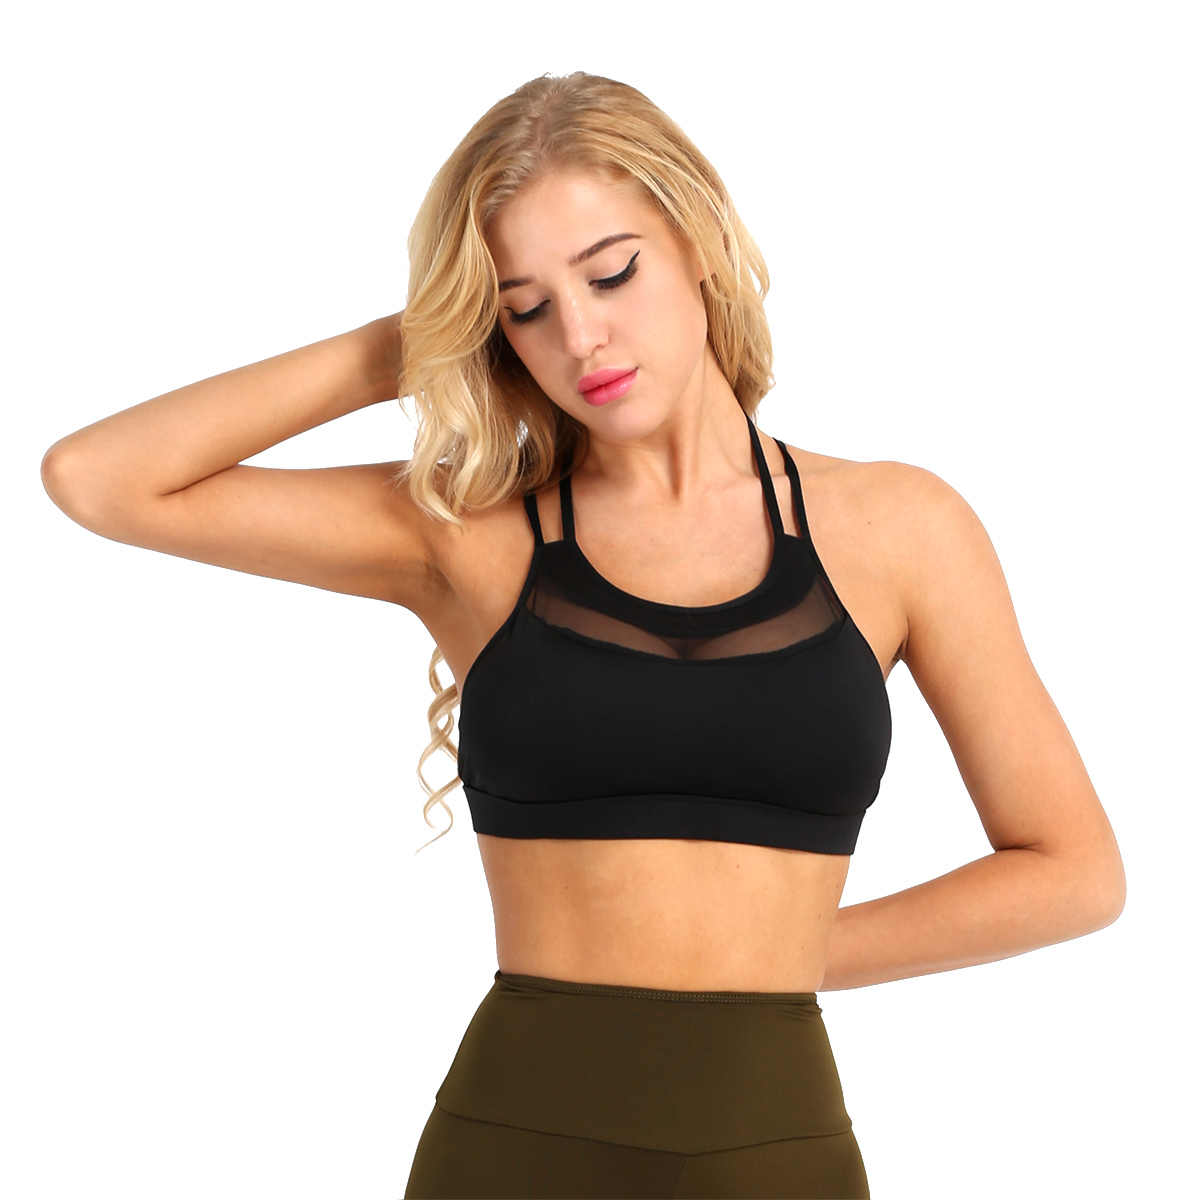 0010fb6cc2 ... Women Soft Smooth Sports Bra Padded Fenced Strap Cleavage Mesh Line  Tank Top Professional Crop Tops ...